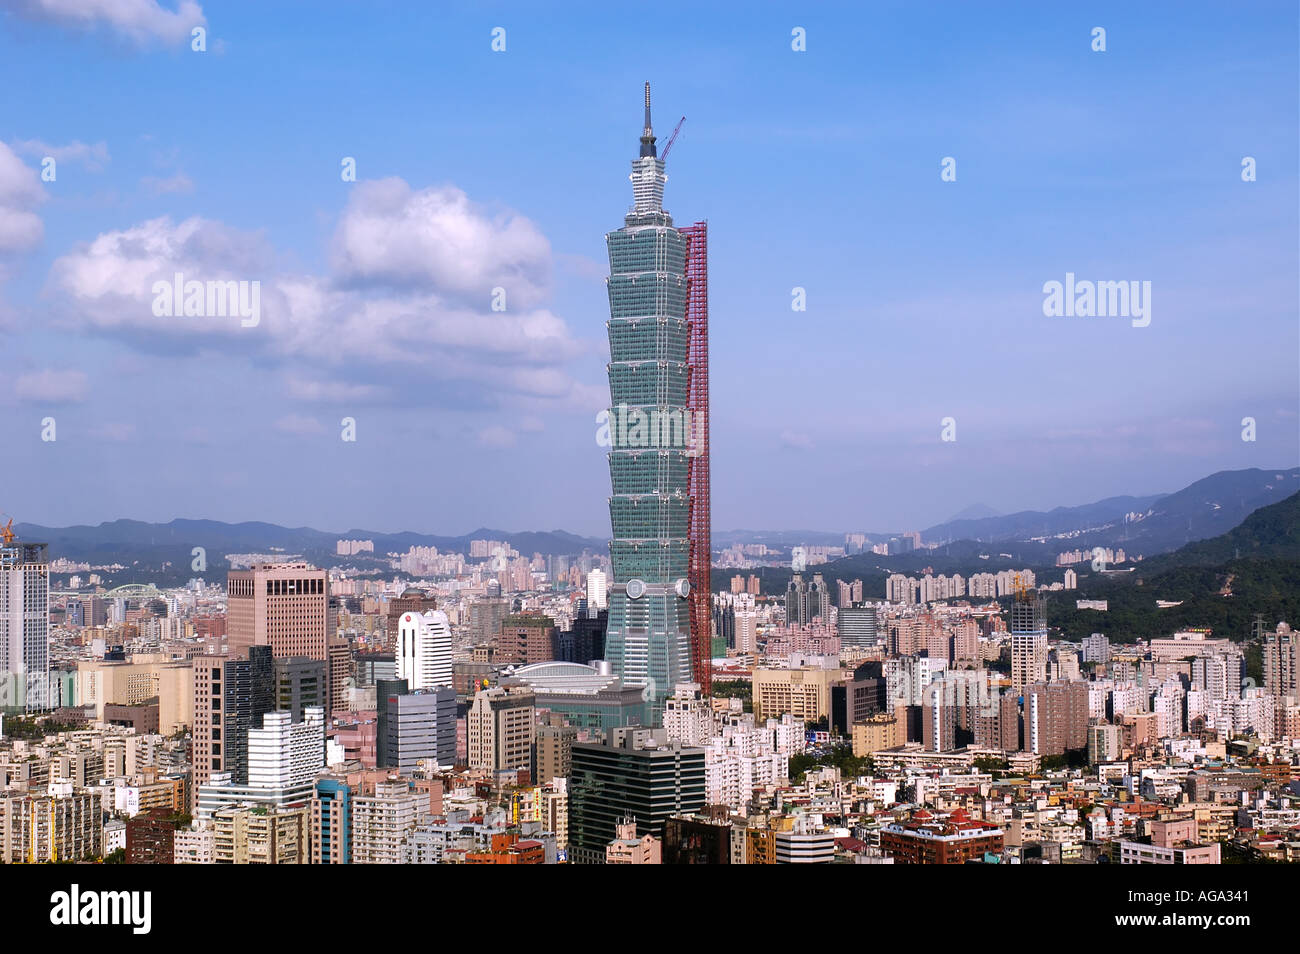 Taipei 101 tower under construction in Taiwan Stock Photo